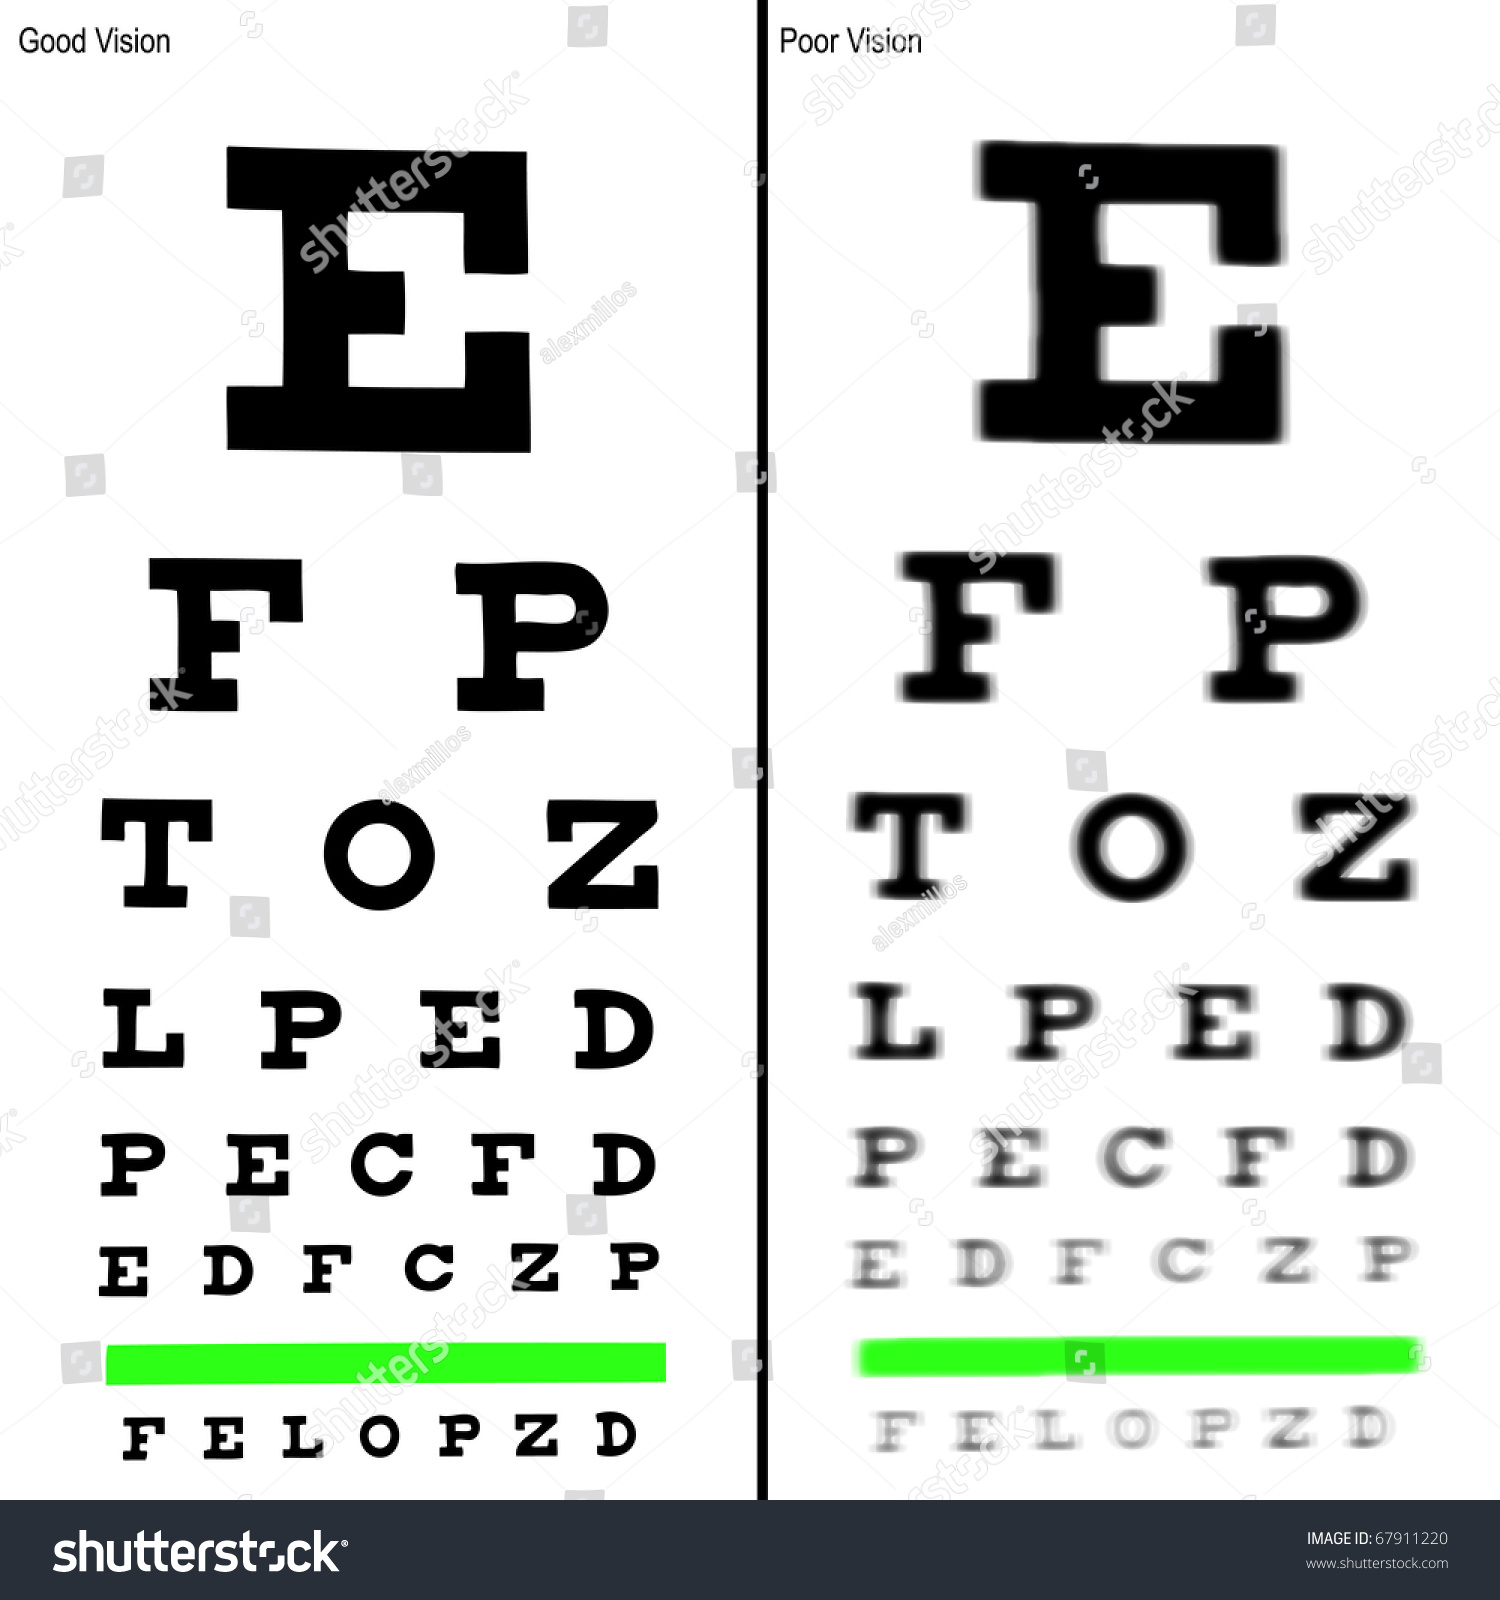 Good And Poor Eye Chart Illustrations Ez Canvas